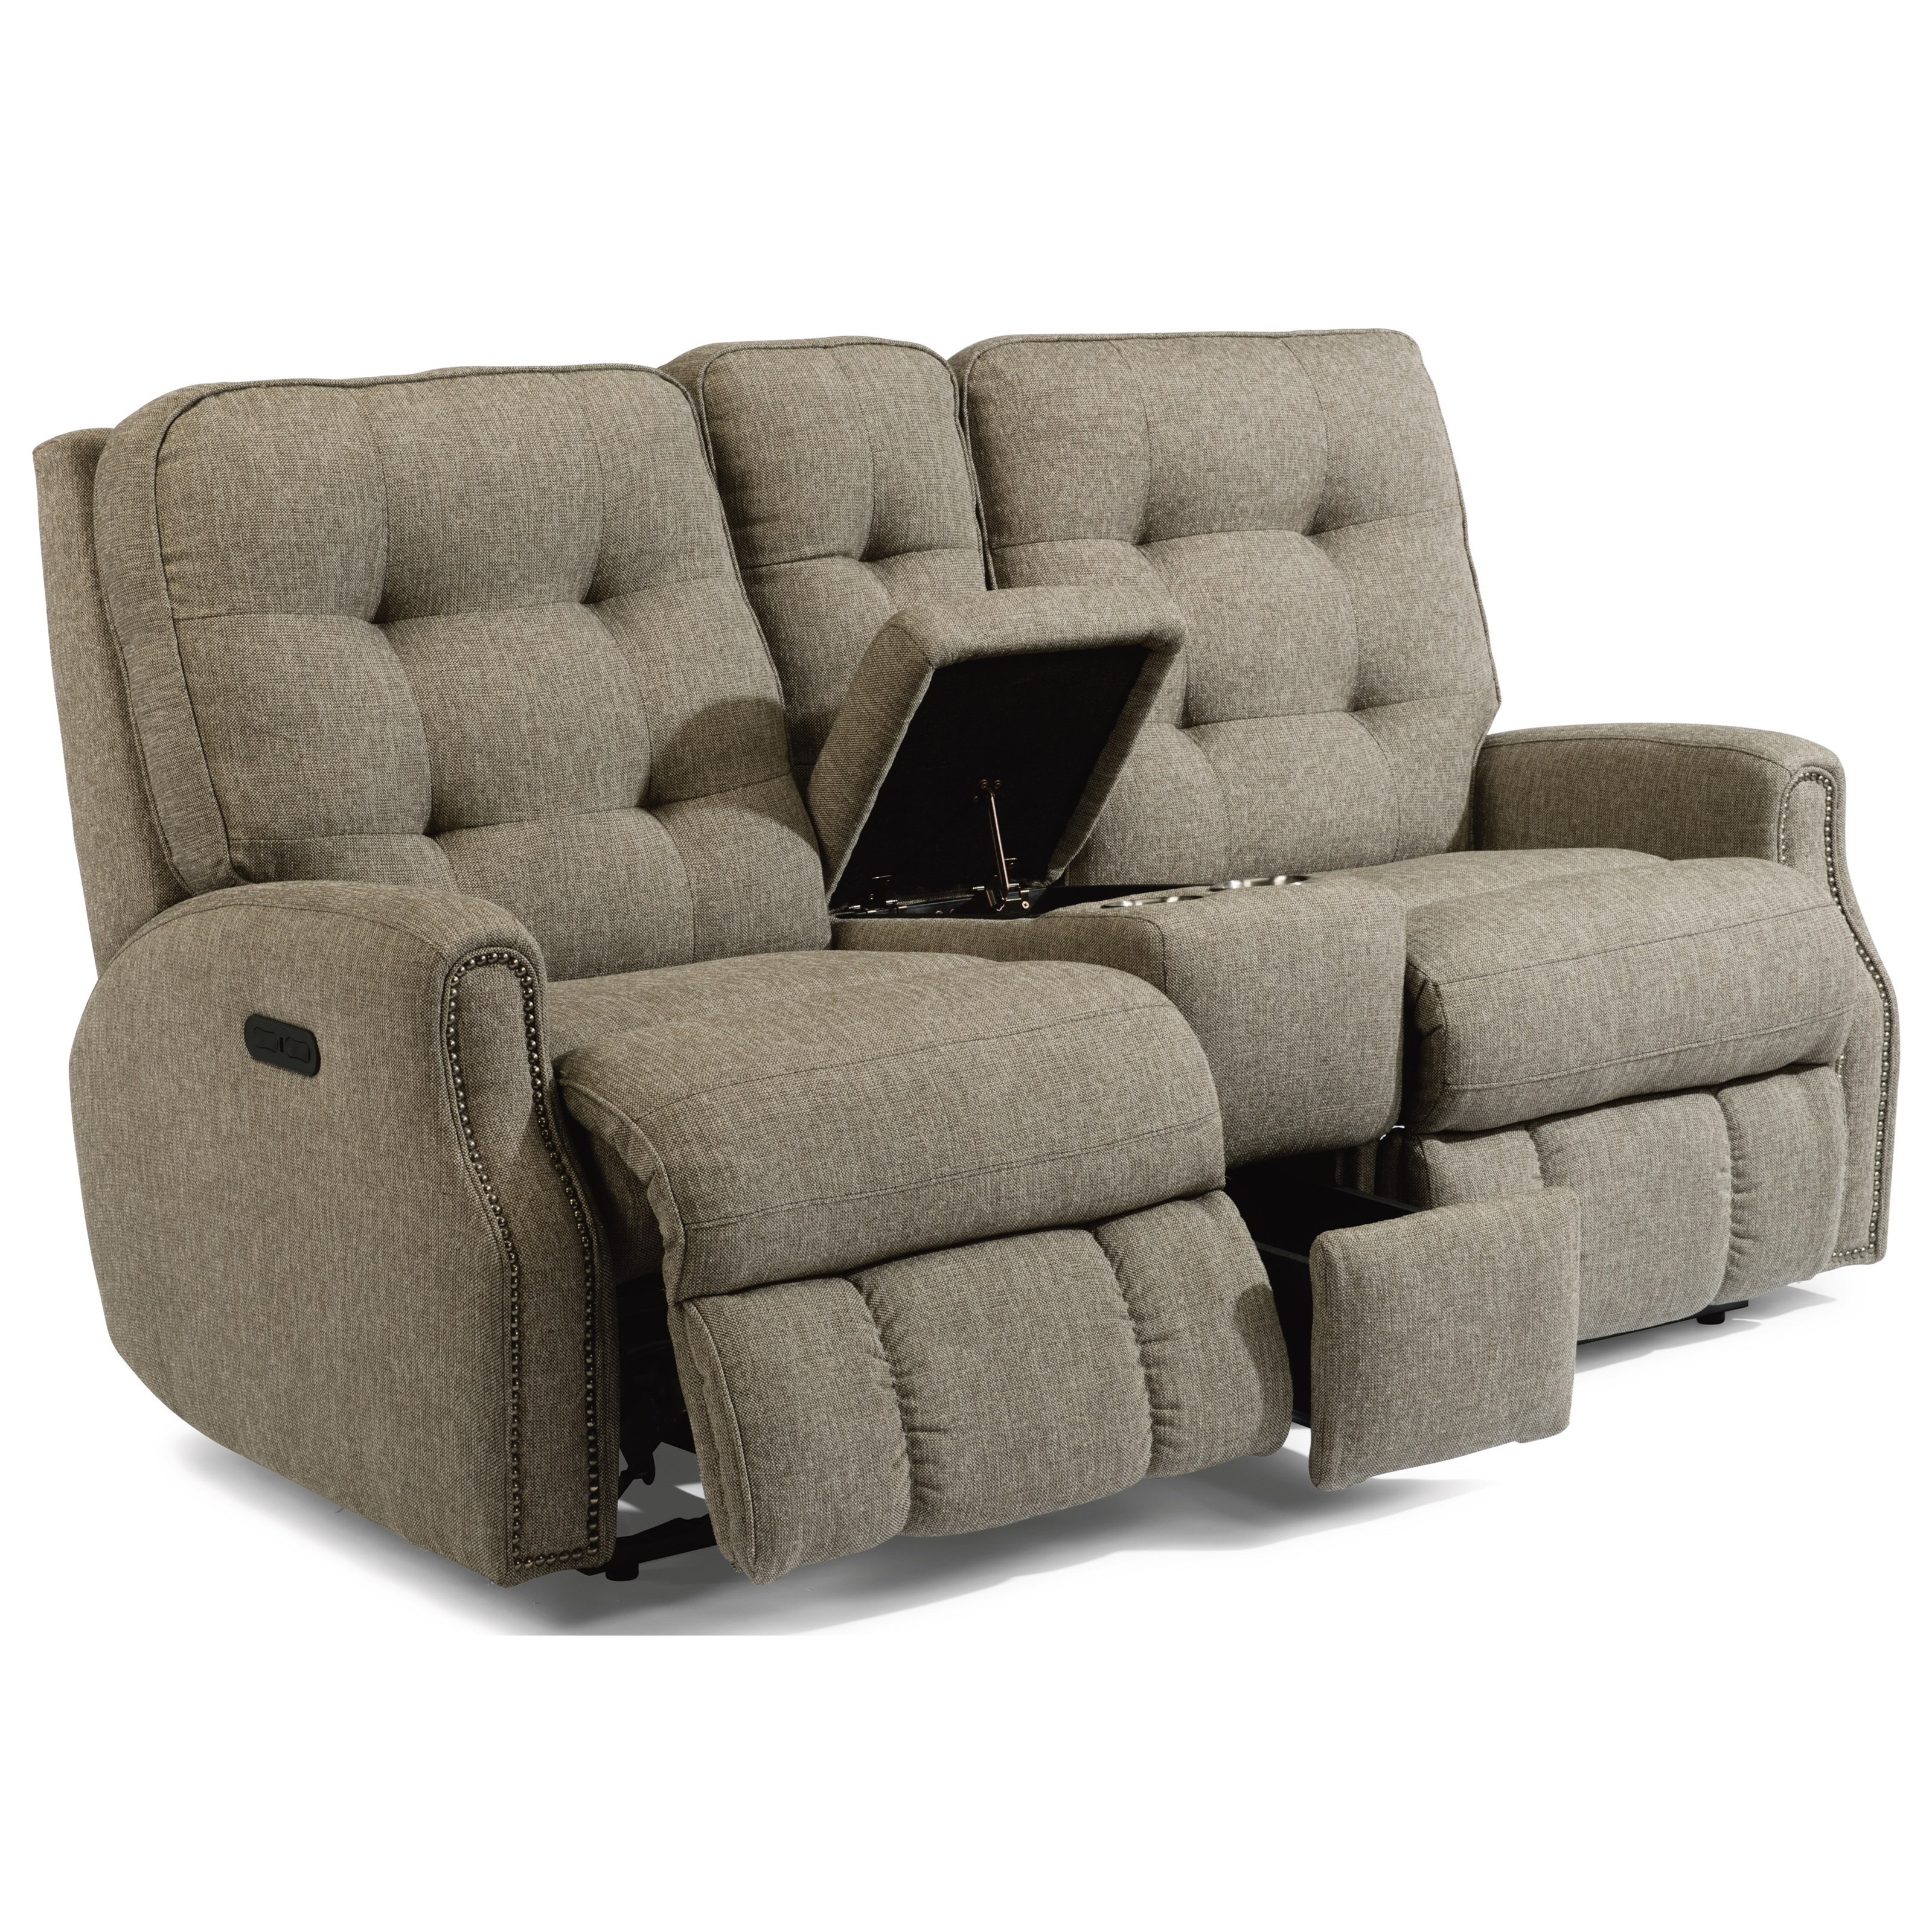 Devon Power Reclining Loveseat with Console by Flexsteel at Jordan's Home Furnishings